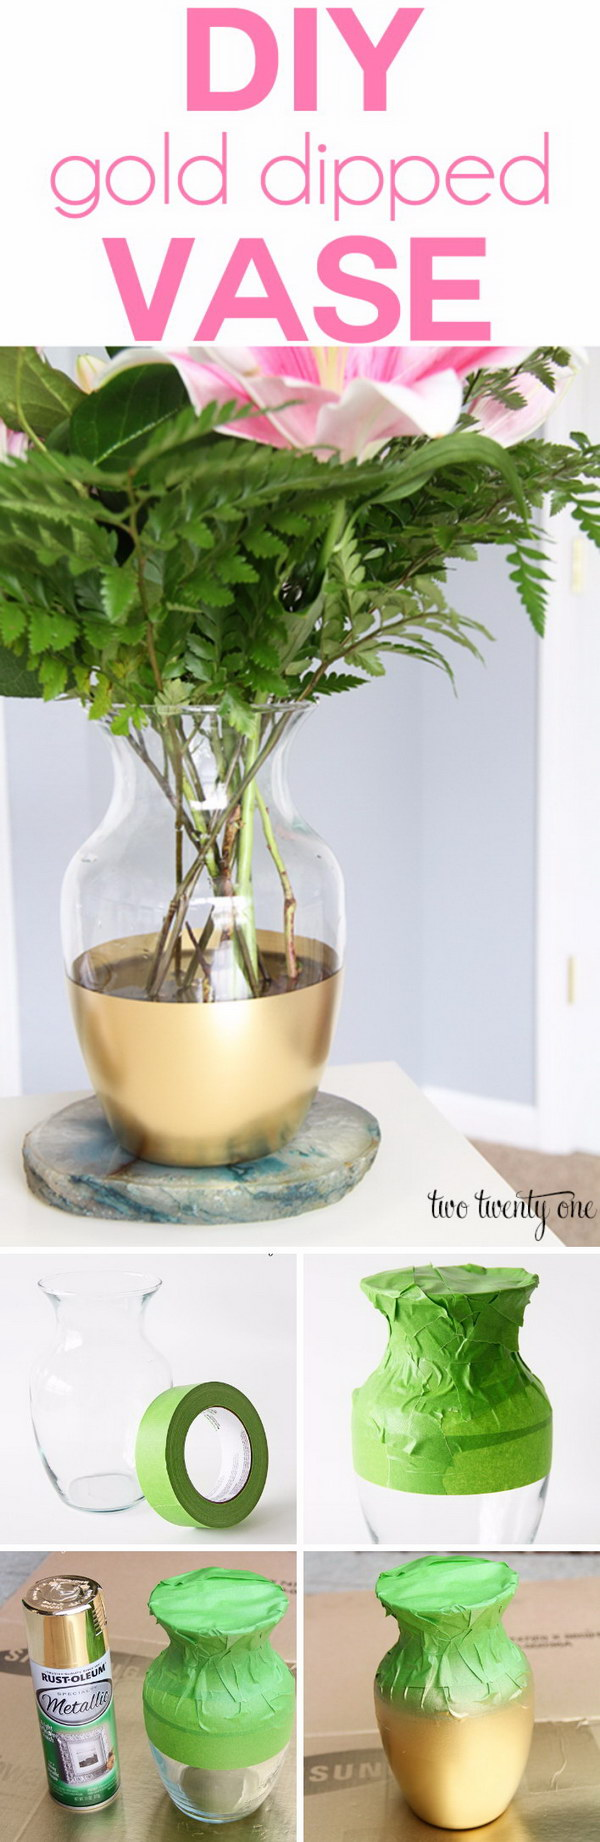 DIY Gold Dipped Vase.